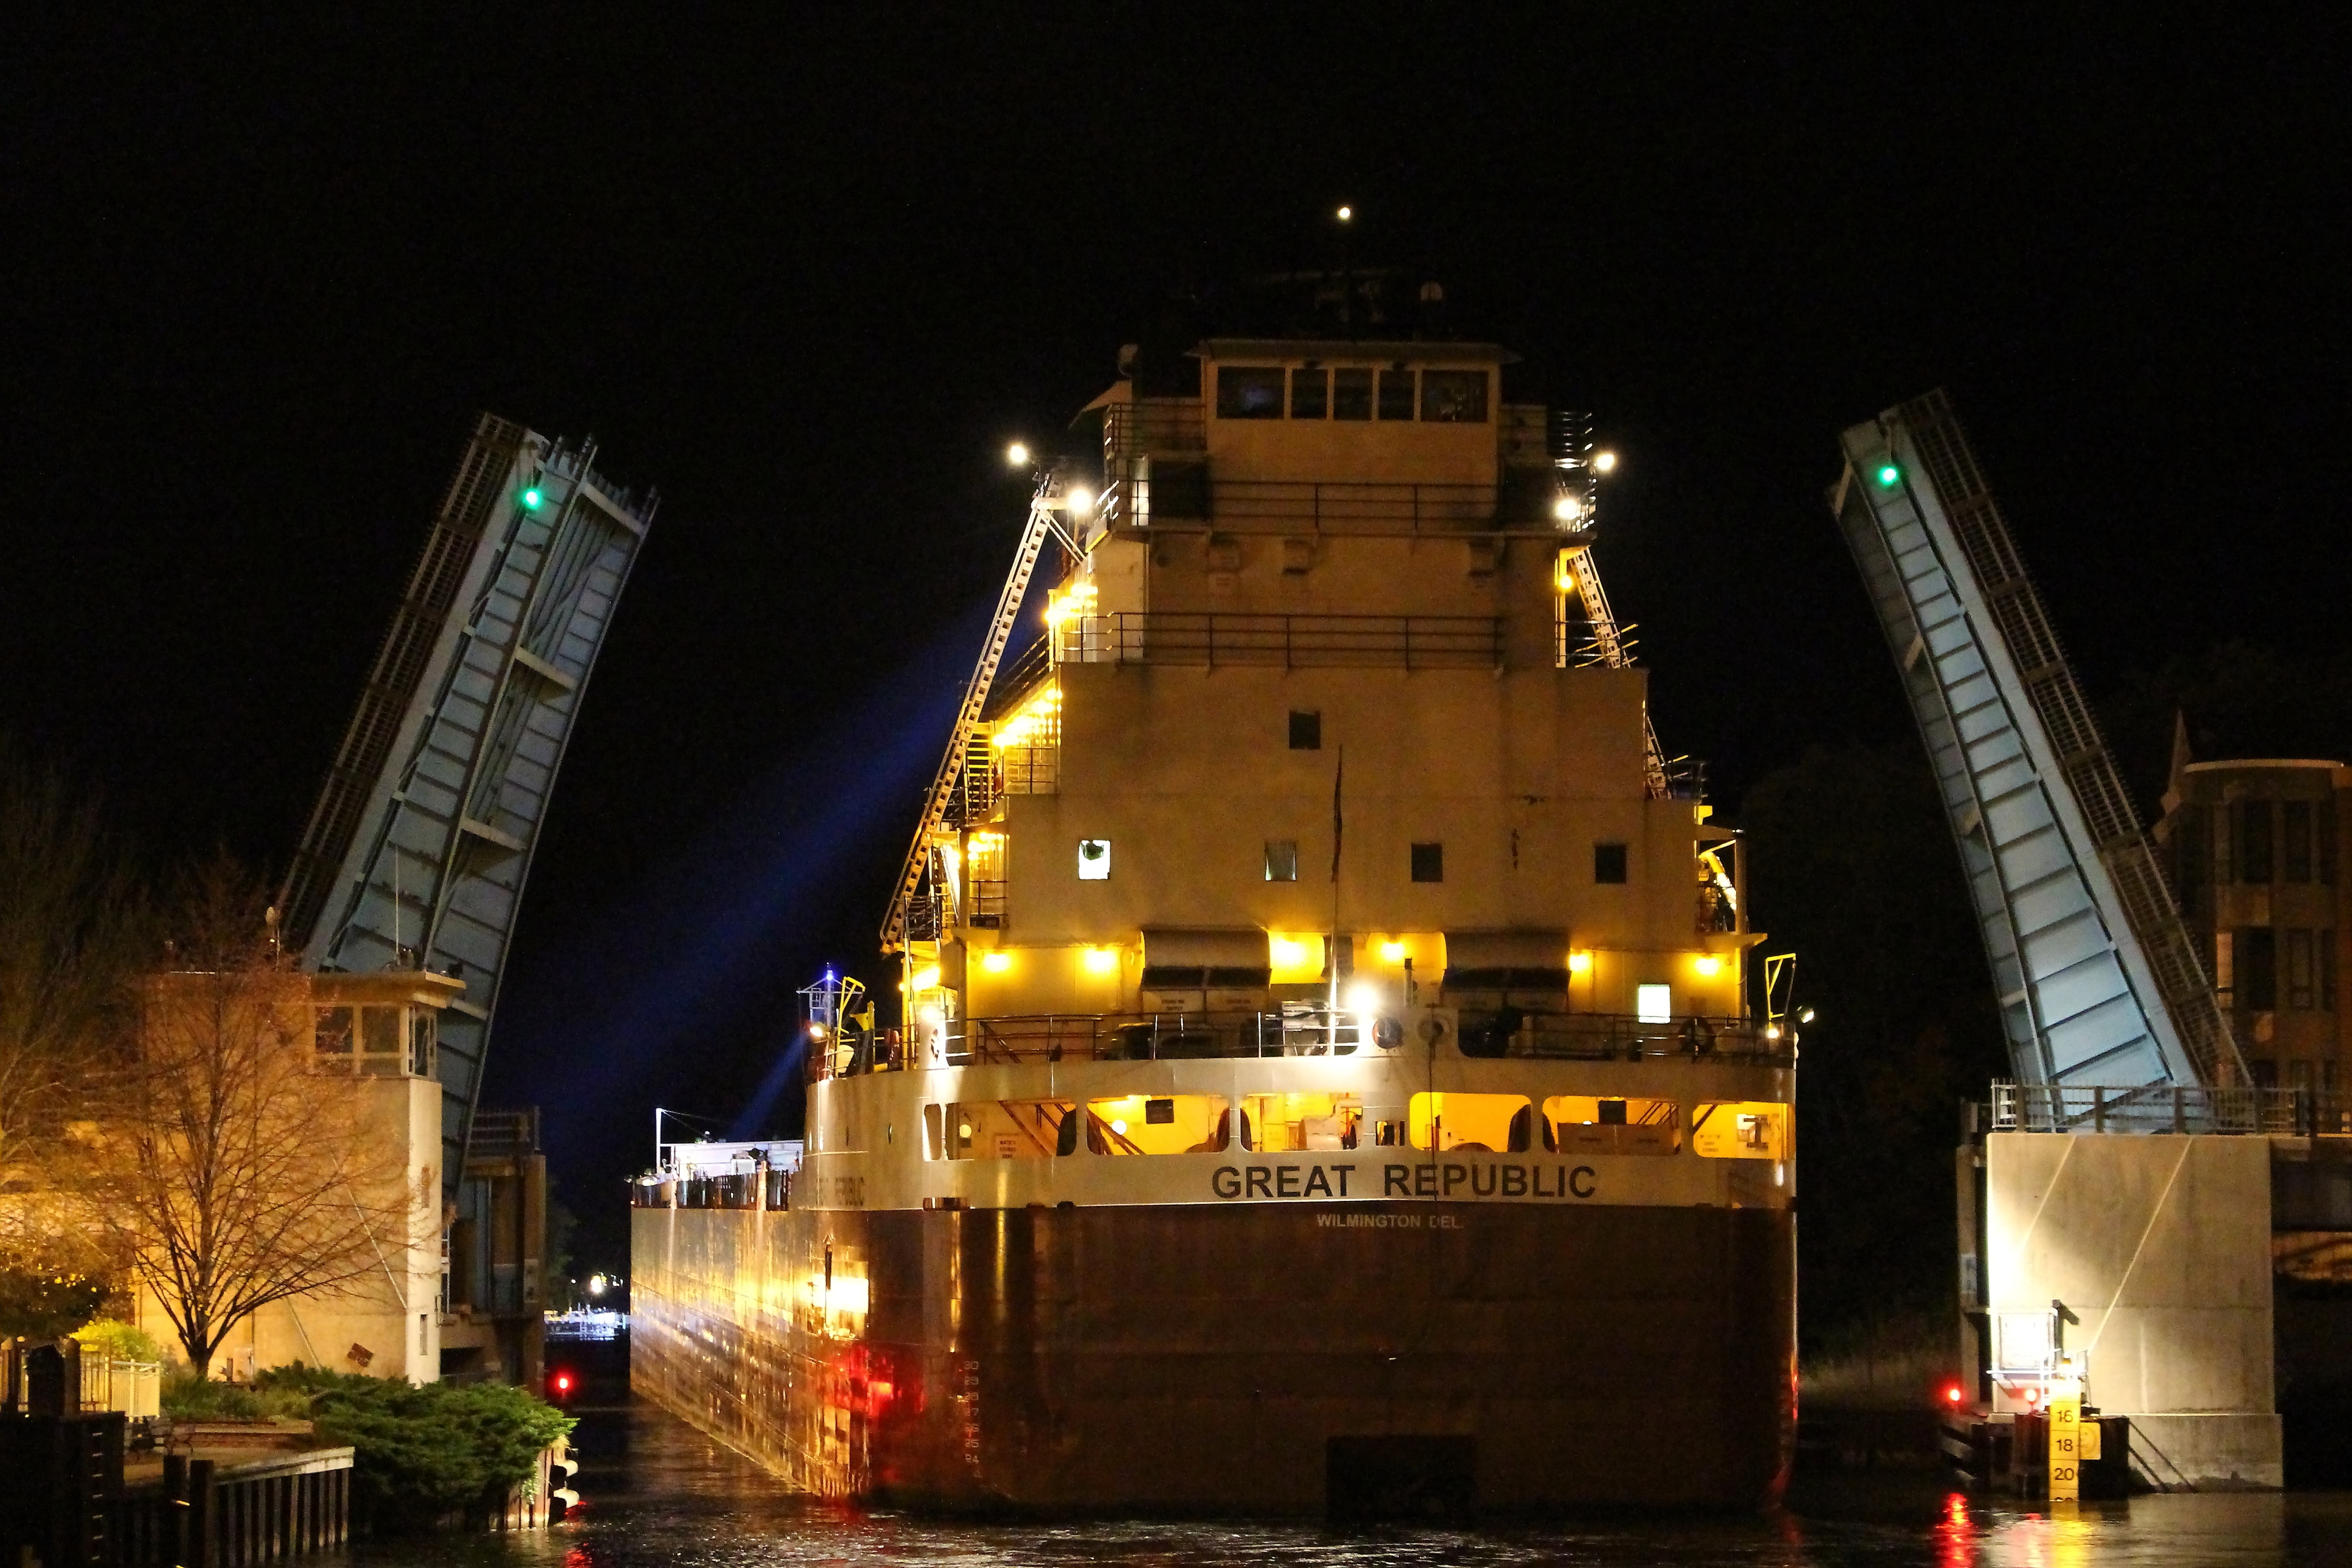 Freighter Great Republic exiting the Manistee River Channel at Maple Street Bridge at night